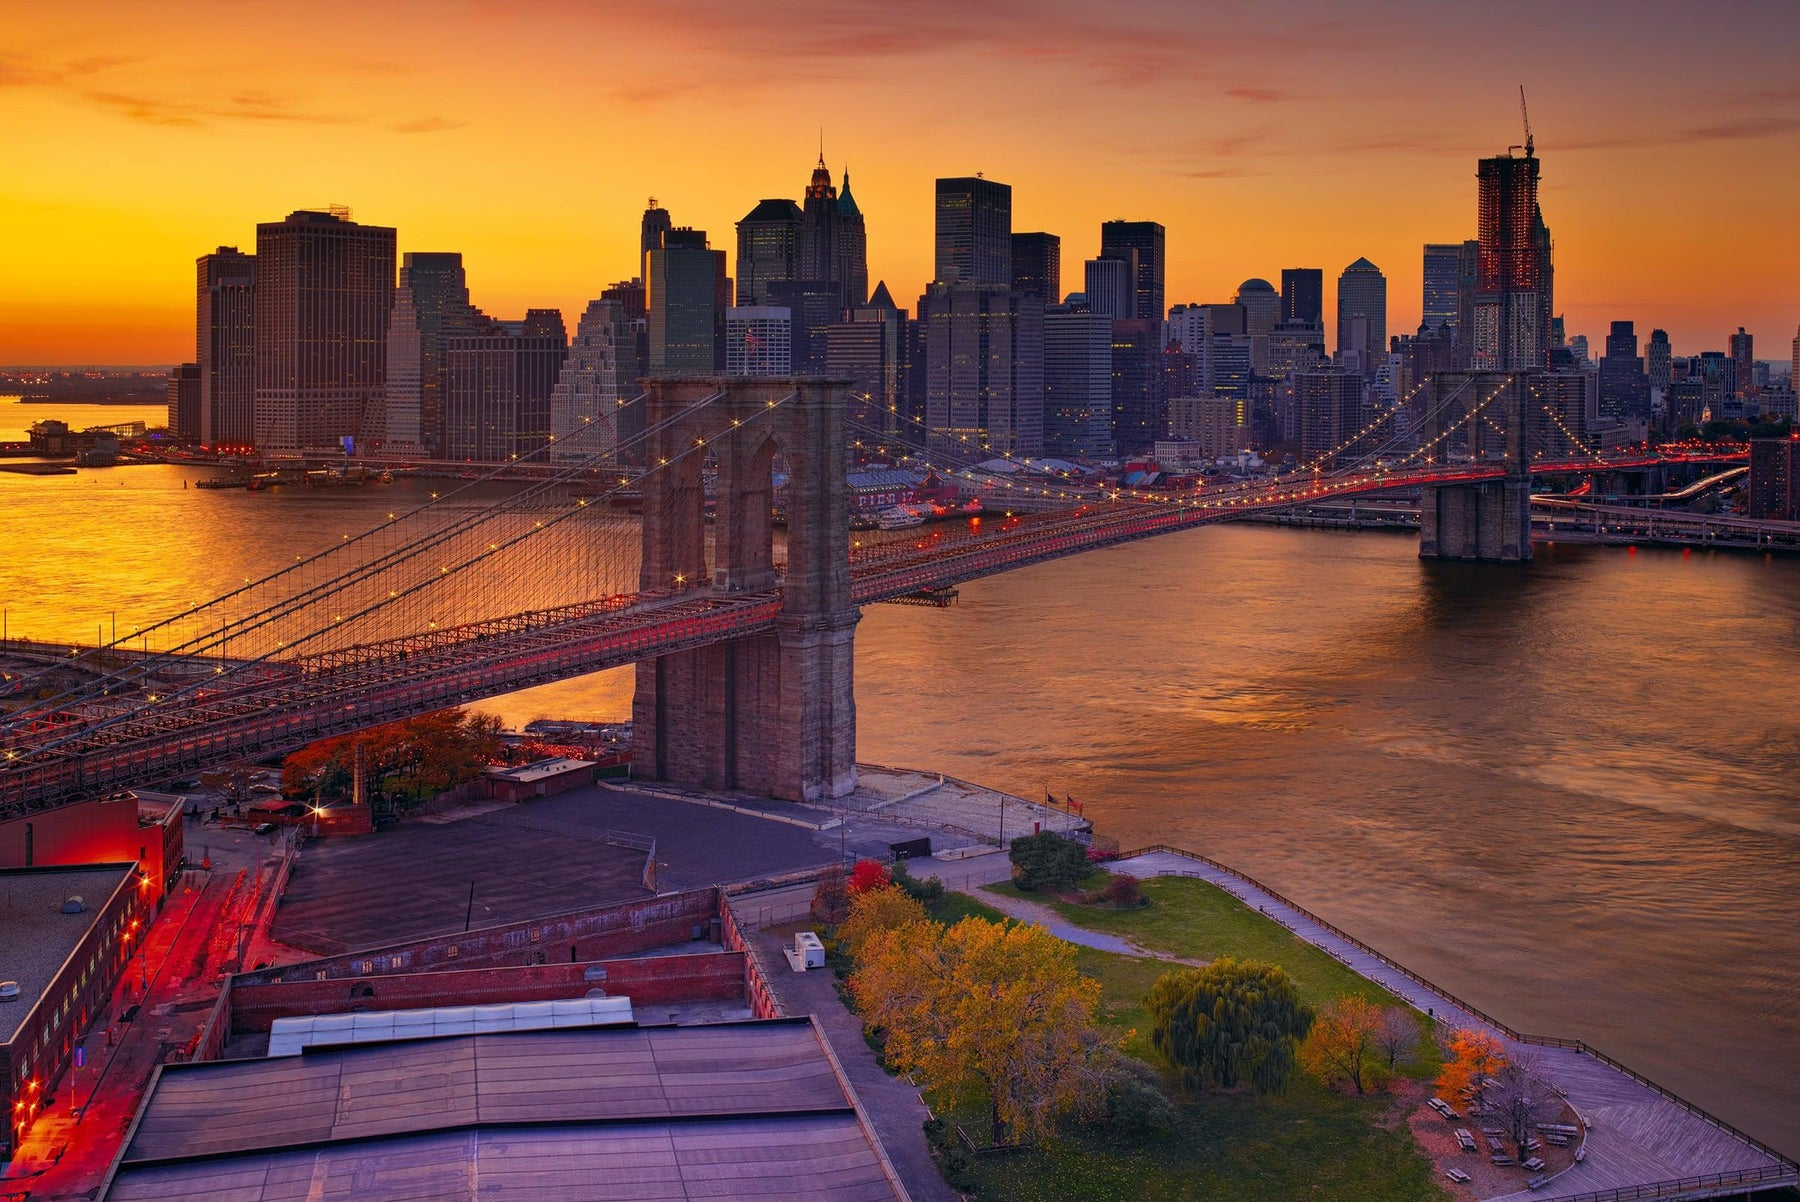 Rooftop view of the Brooklyn Bridge at sunset leading over the East River into Brooklyn New York